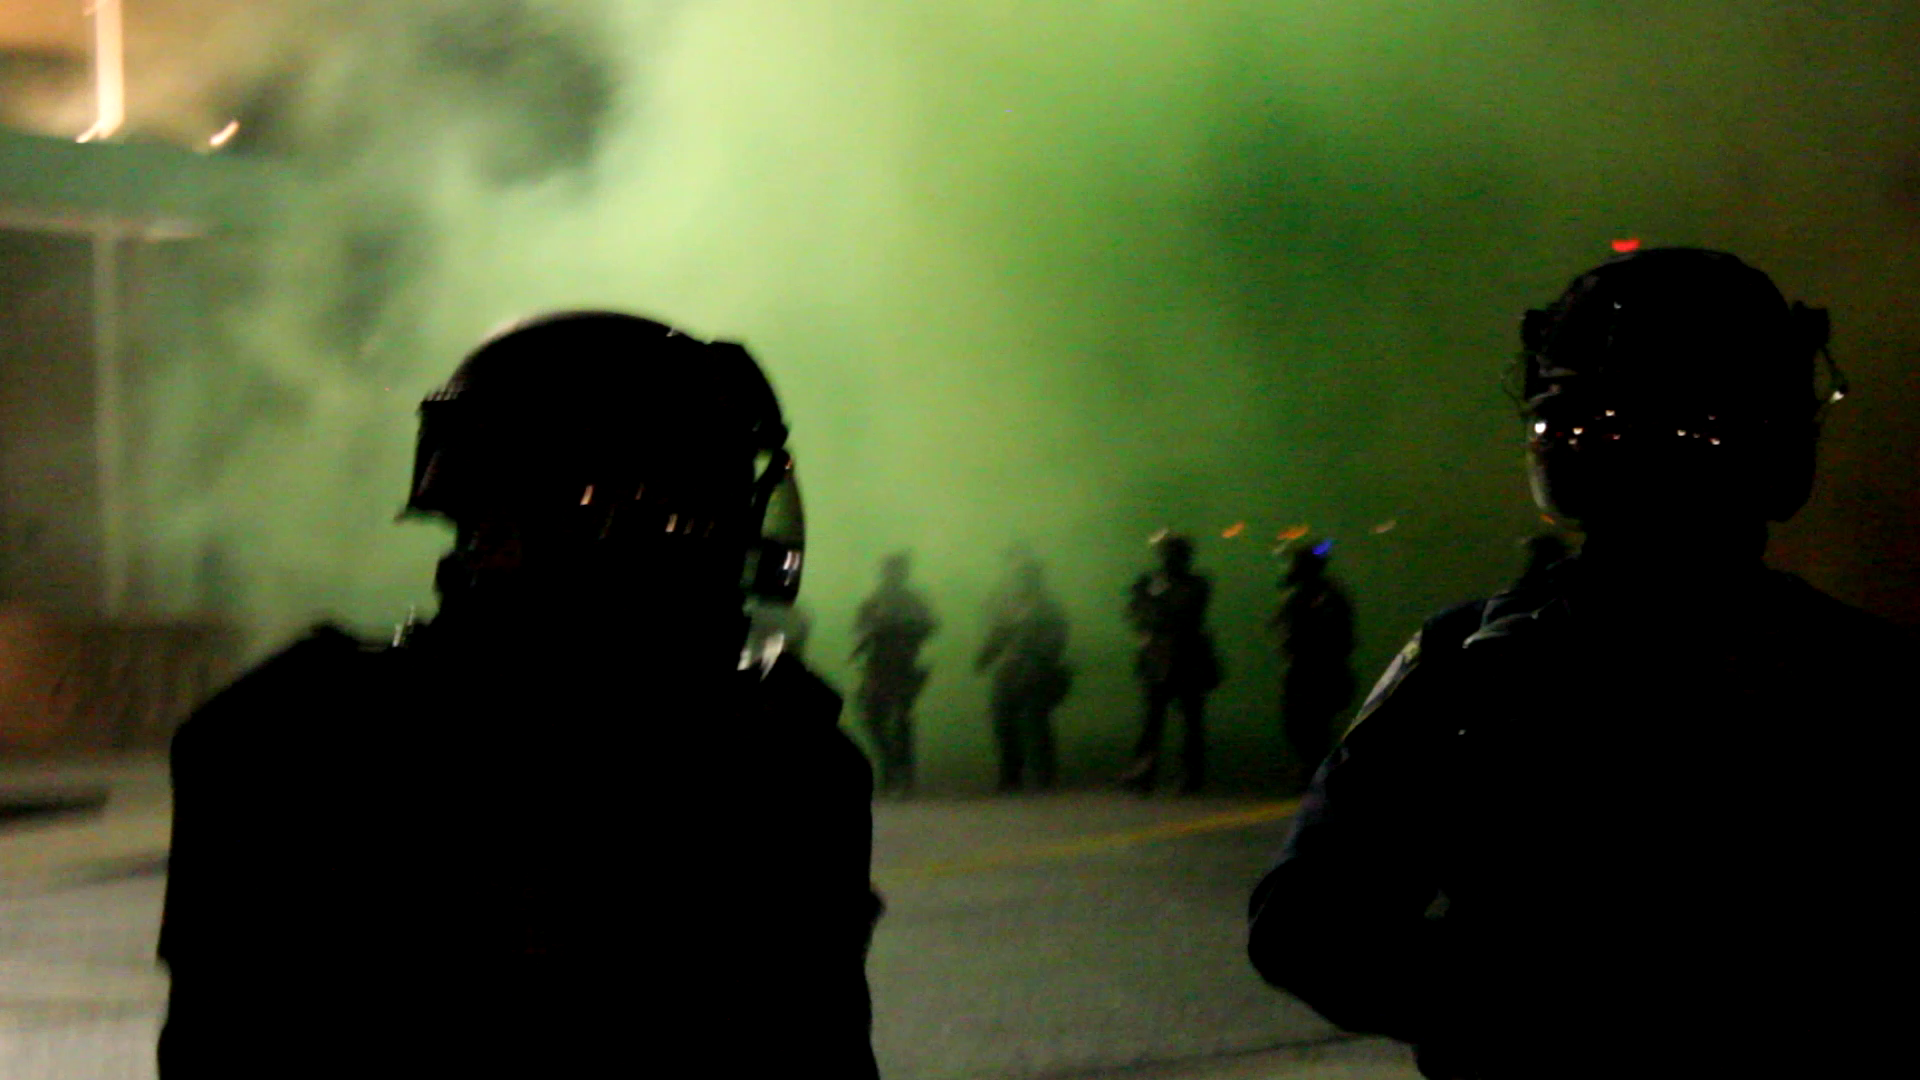 Two police officers in riot gear, with green smoke and a line of riot cops in the background